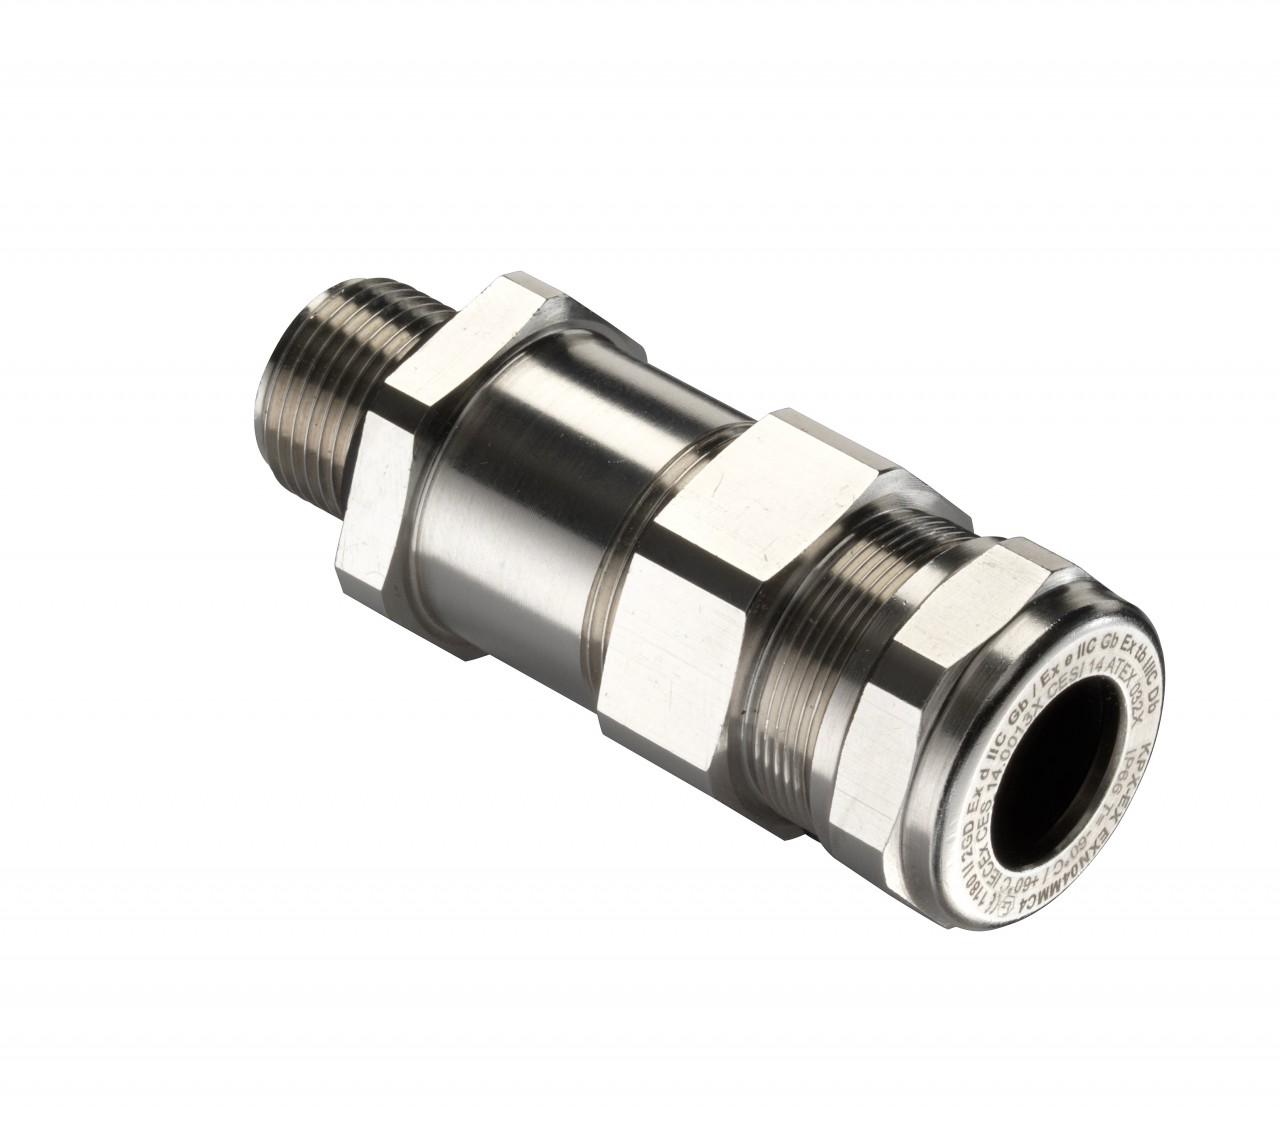 Cable_Gland_C4_